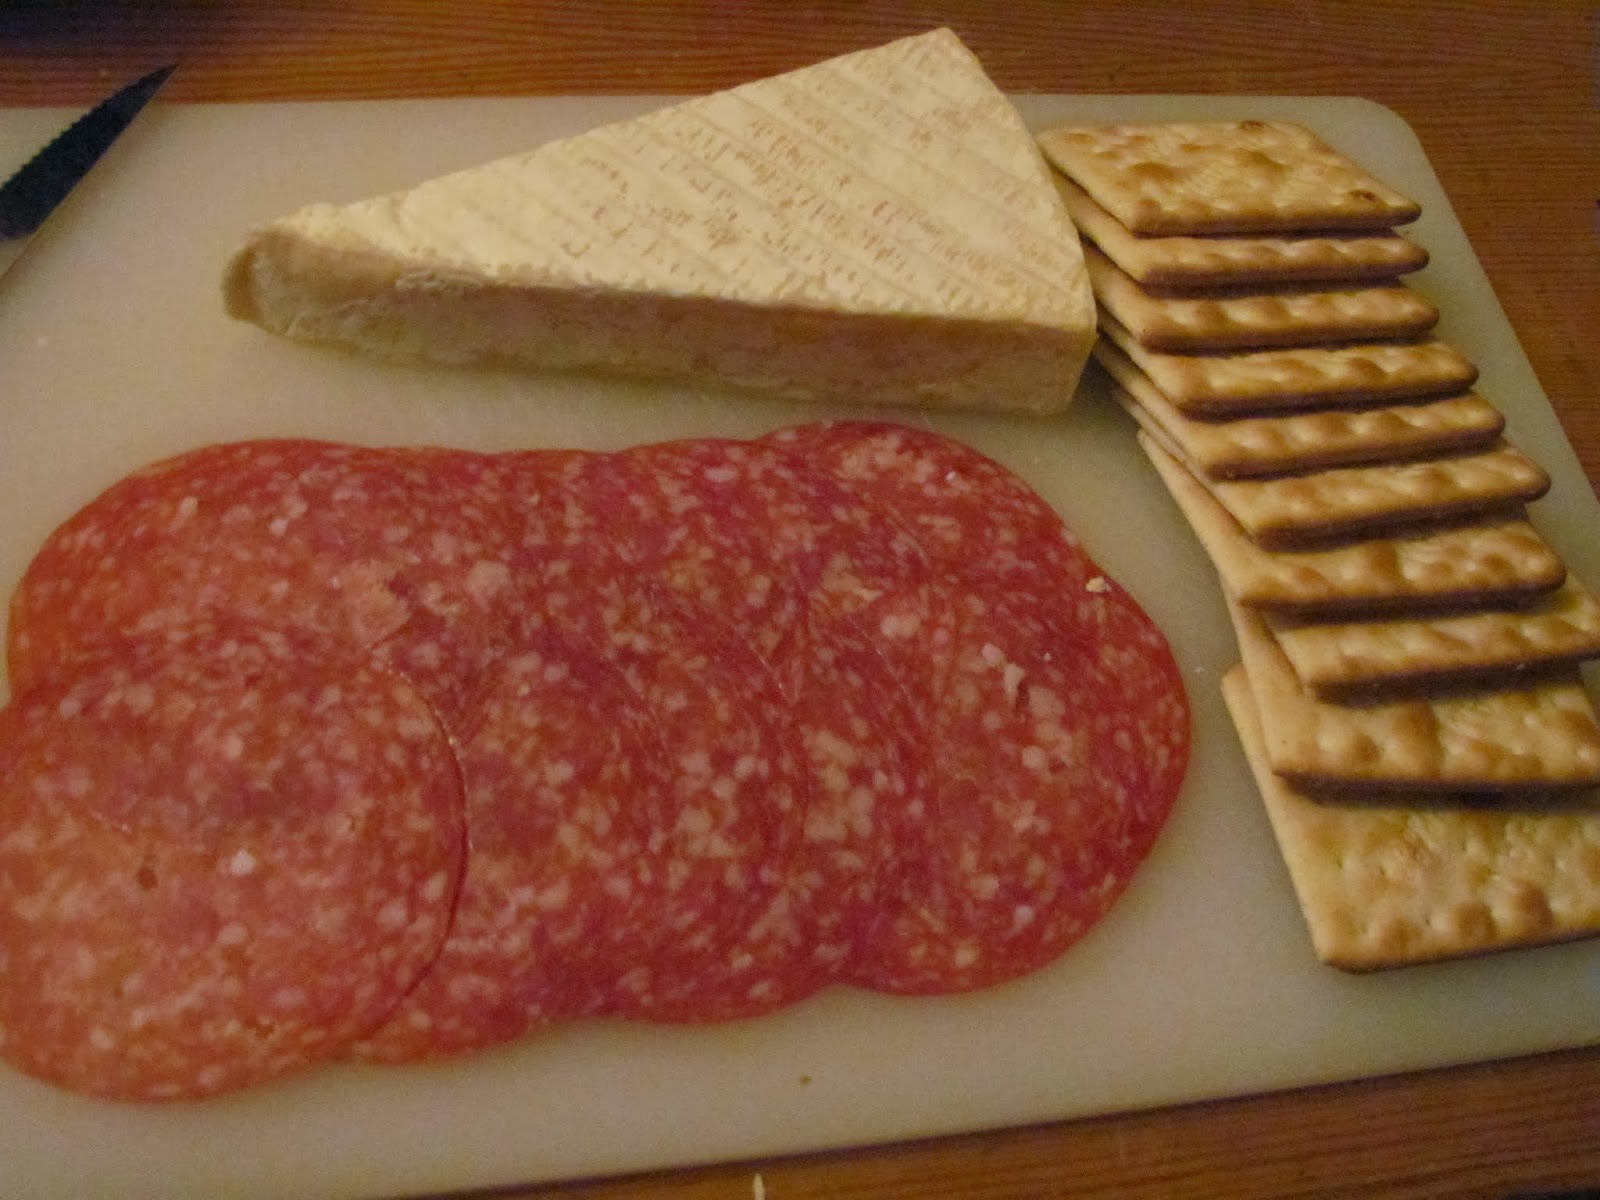 Salami, Brie, and Crackers for Mid-Evening Snack